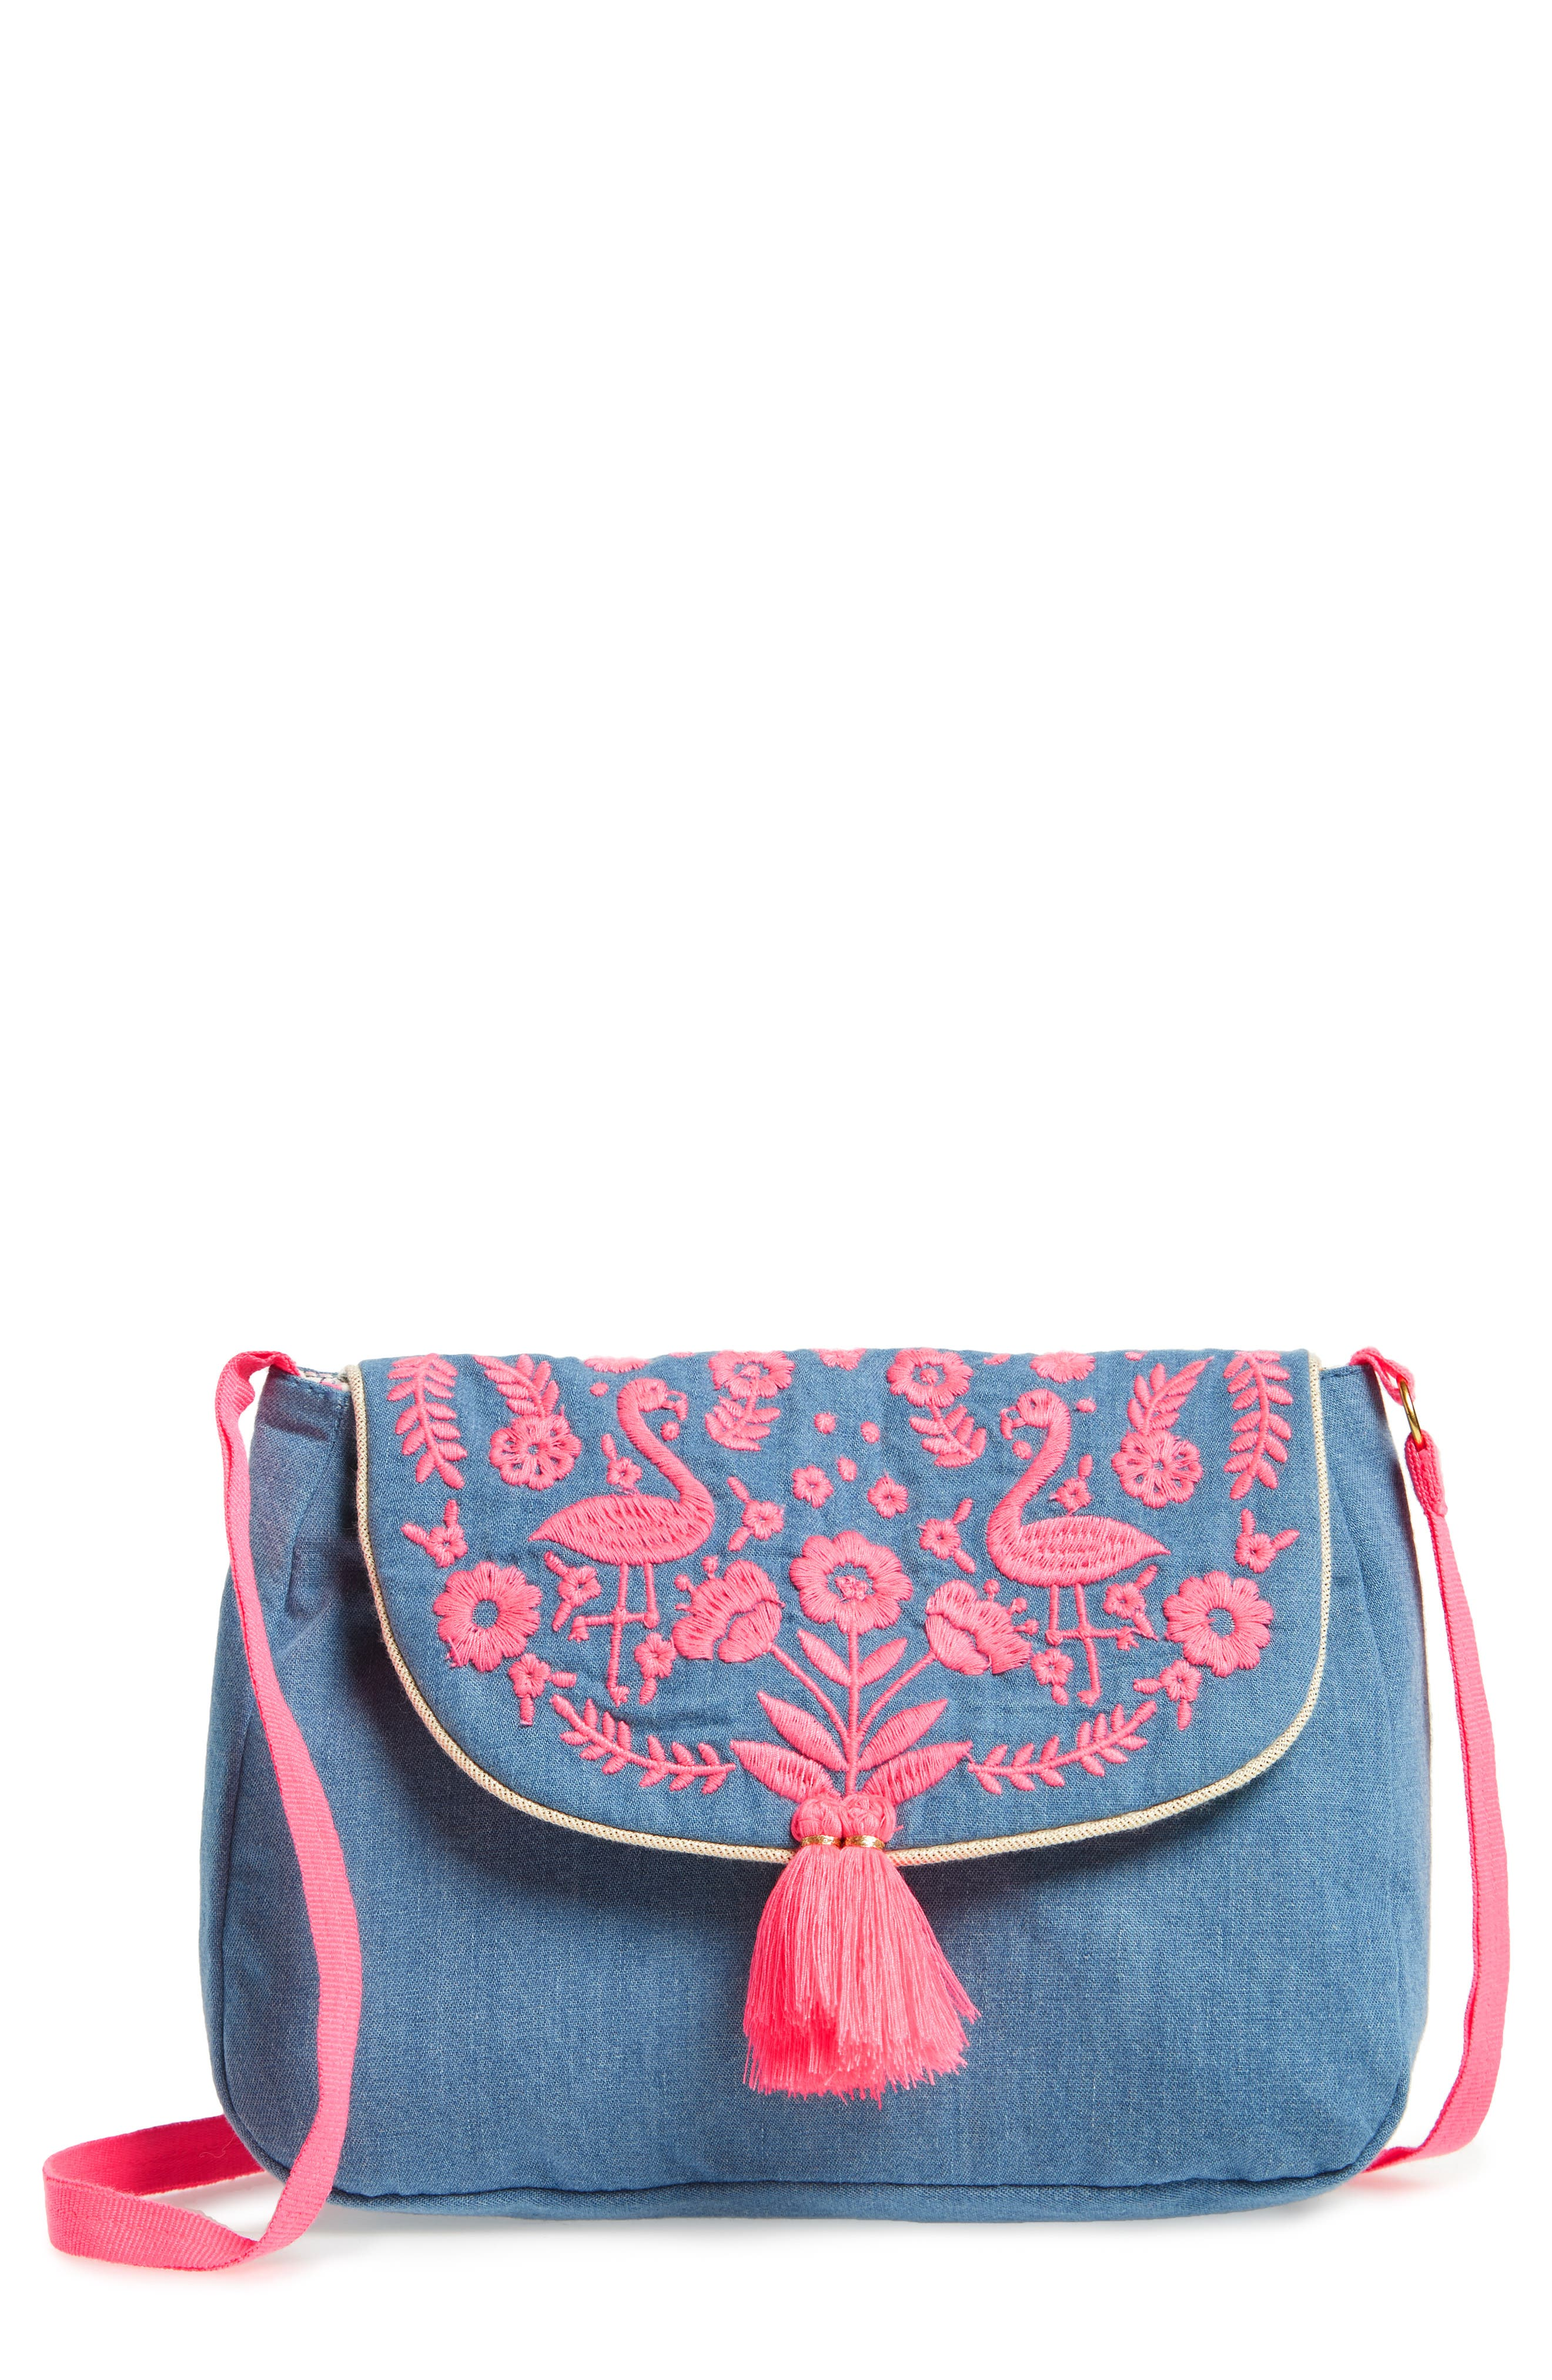 Embroidered Denim Shoulder Bag,                         Main,                         color, 654